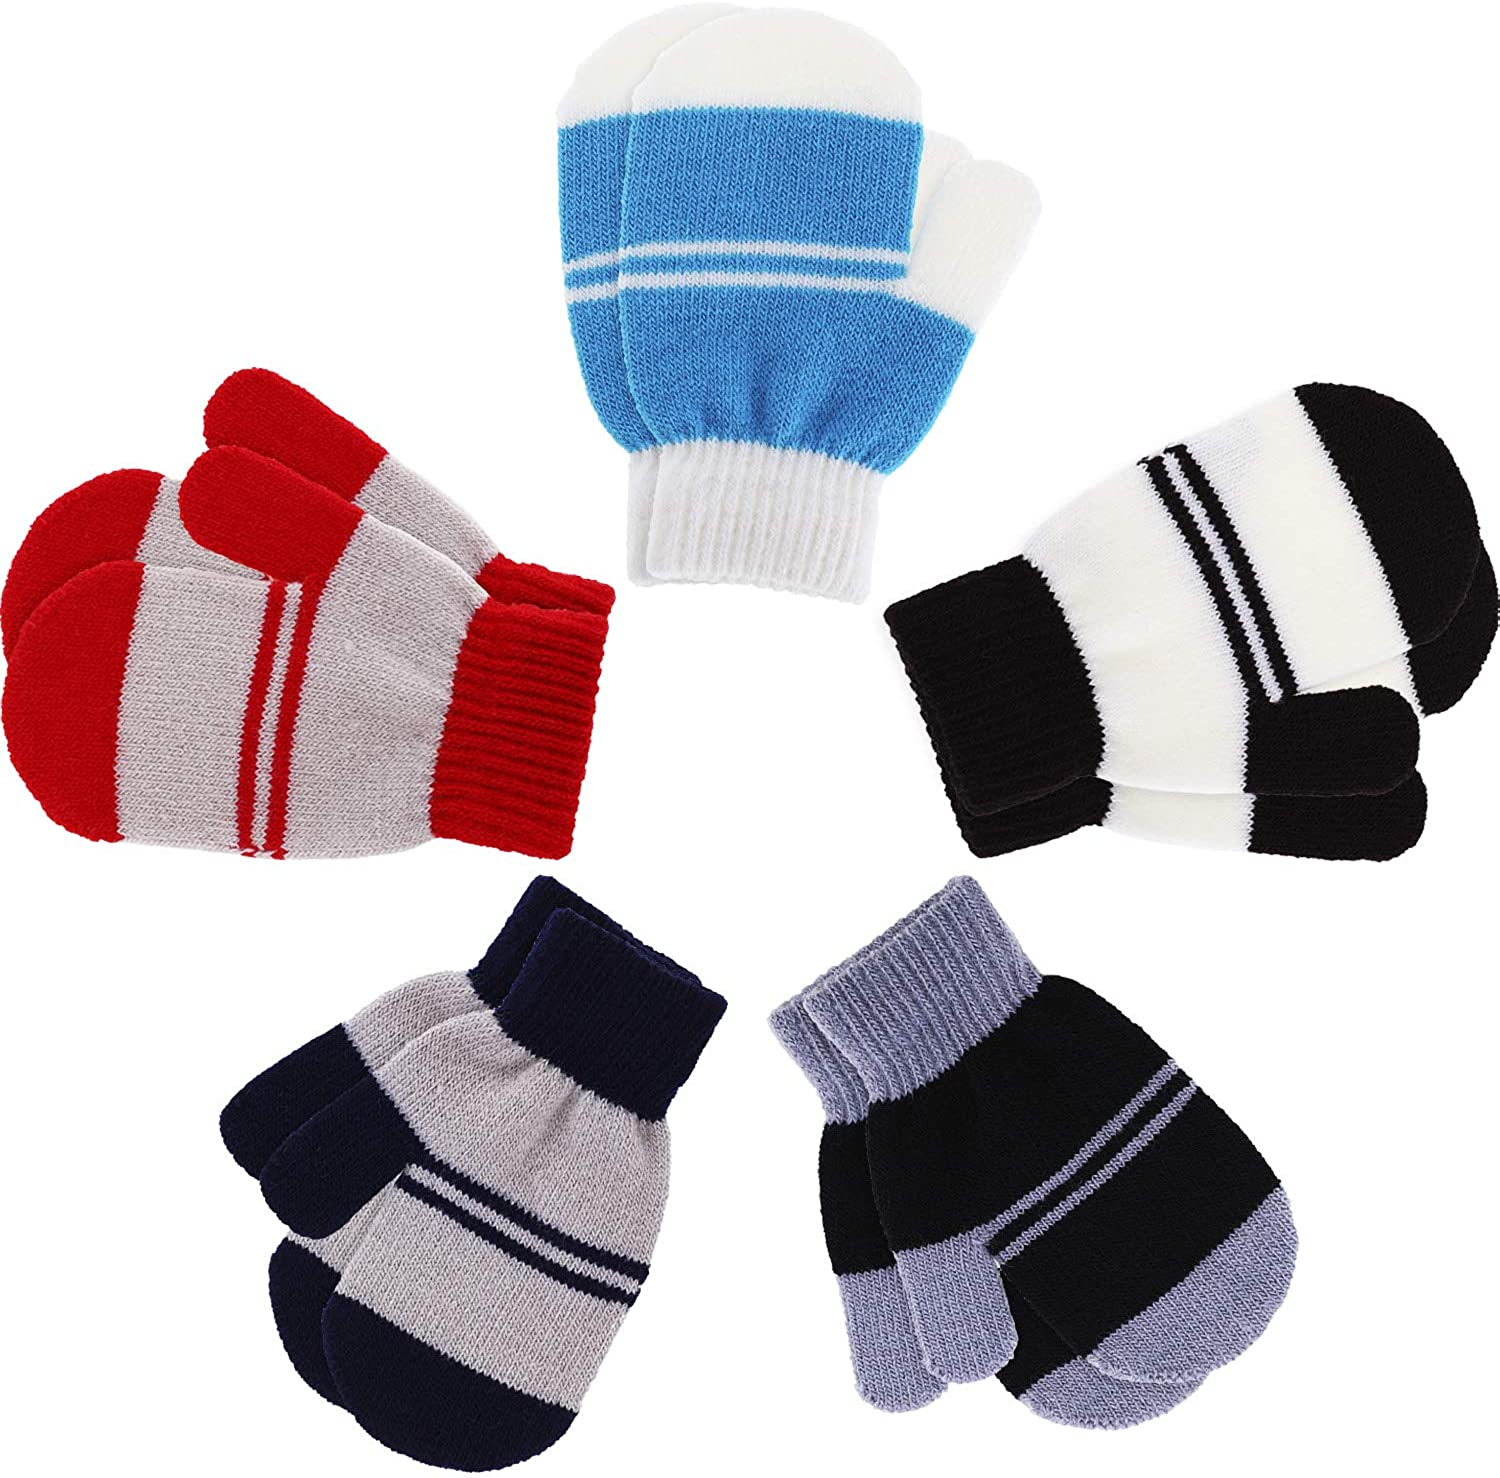 Boao 5 Pairs Stretch Full Finger Mittens Knitted Gloves Winter Warm Kid Gloves for Baby Boys and Girls Supplies (Color Set 4, 1 - 4 Years Size)